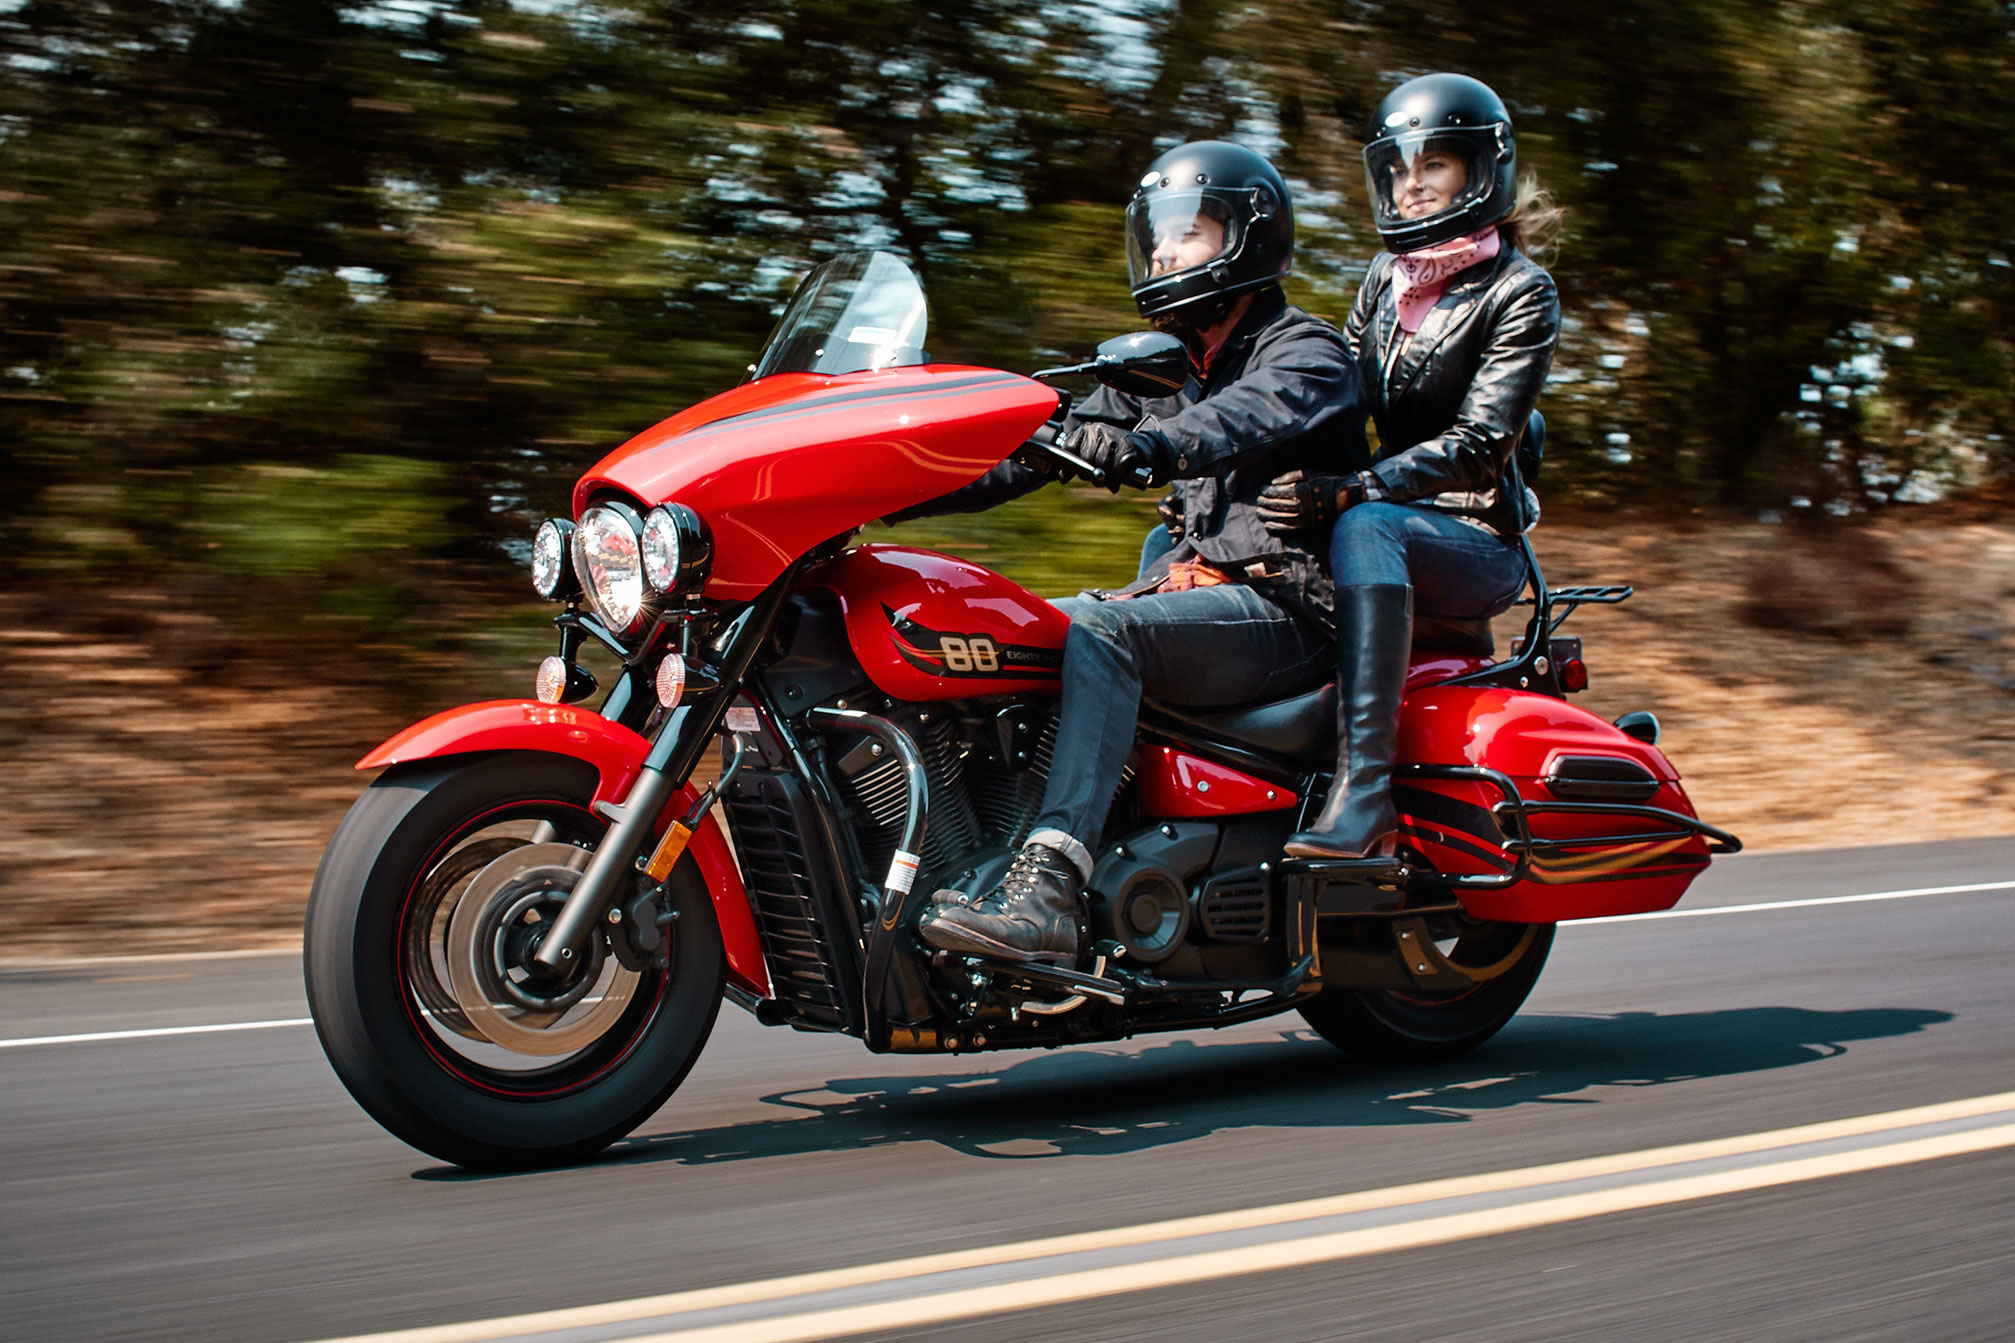 2015 yamaha v star 1300 deluxe review for Yamaha 1300 motorcycle